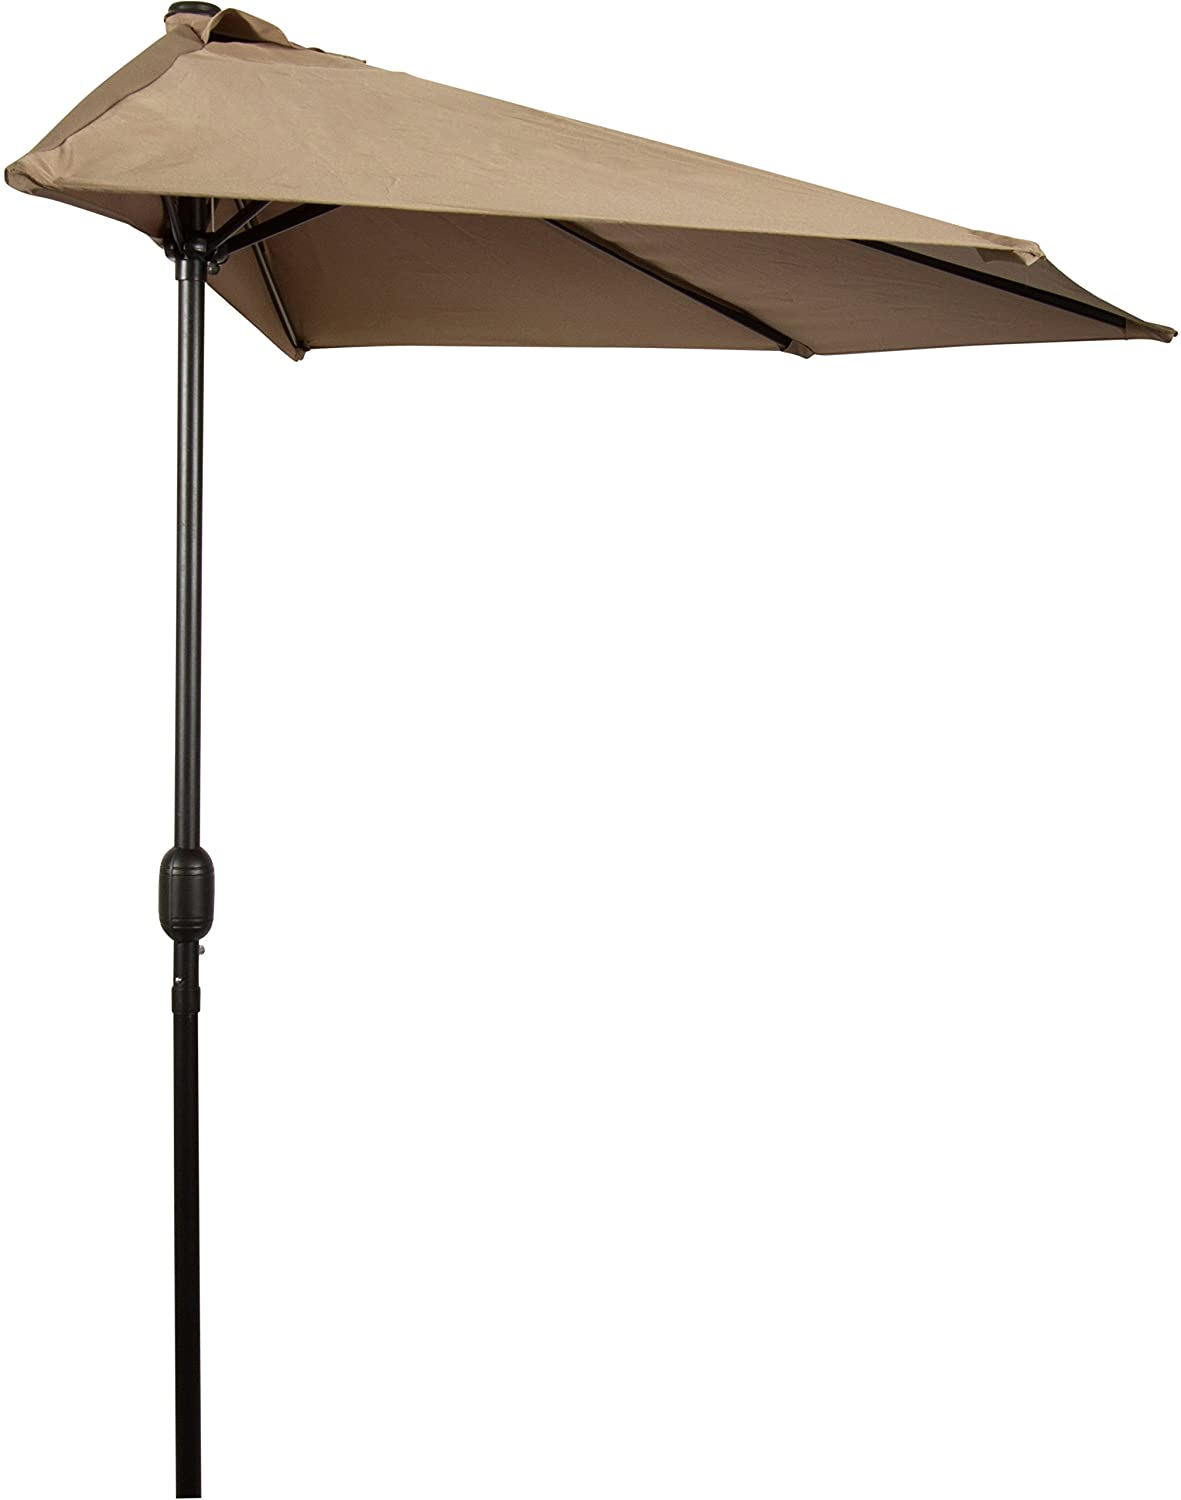 Best outdoor patio umbrellas 2018 review rating for Best outdoor umbrellas reviews